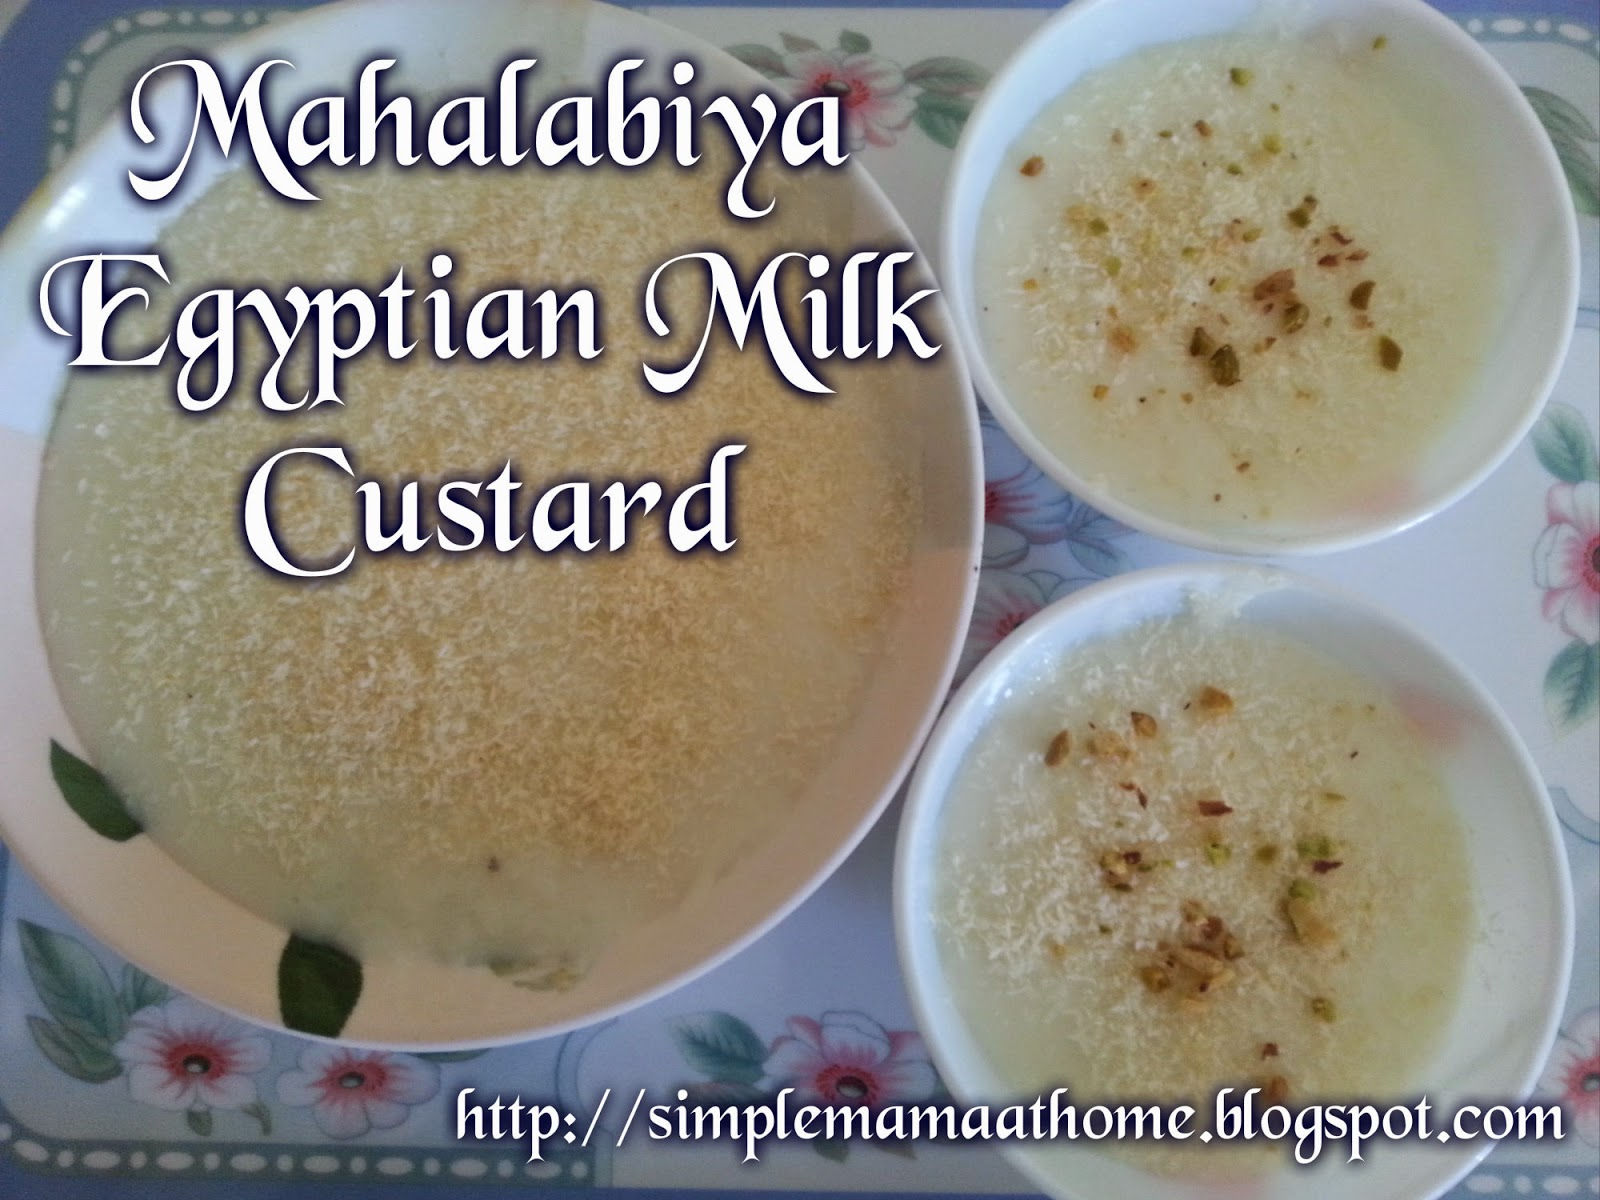 Mahalabiya Egyptian Milk Custard